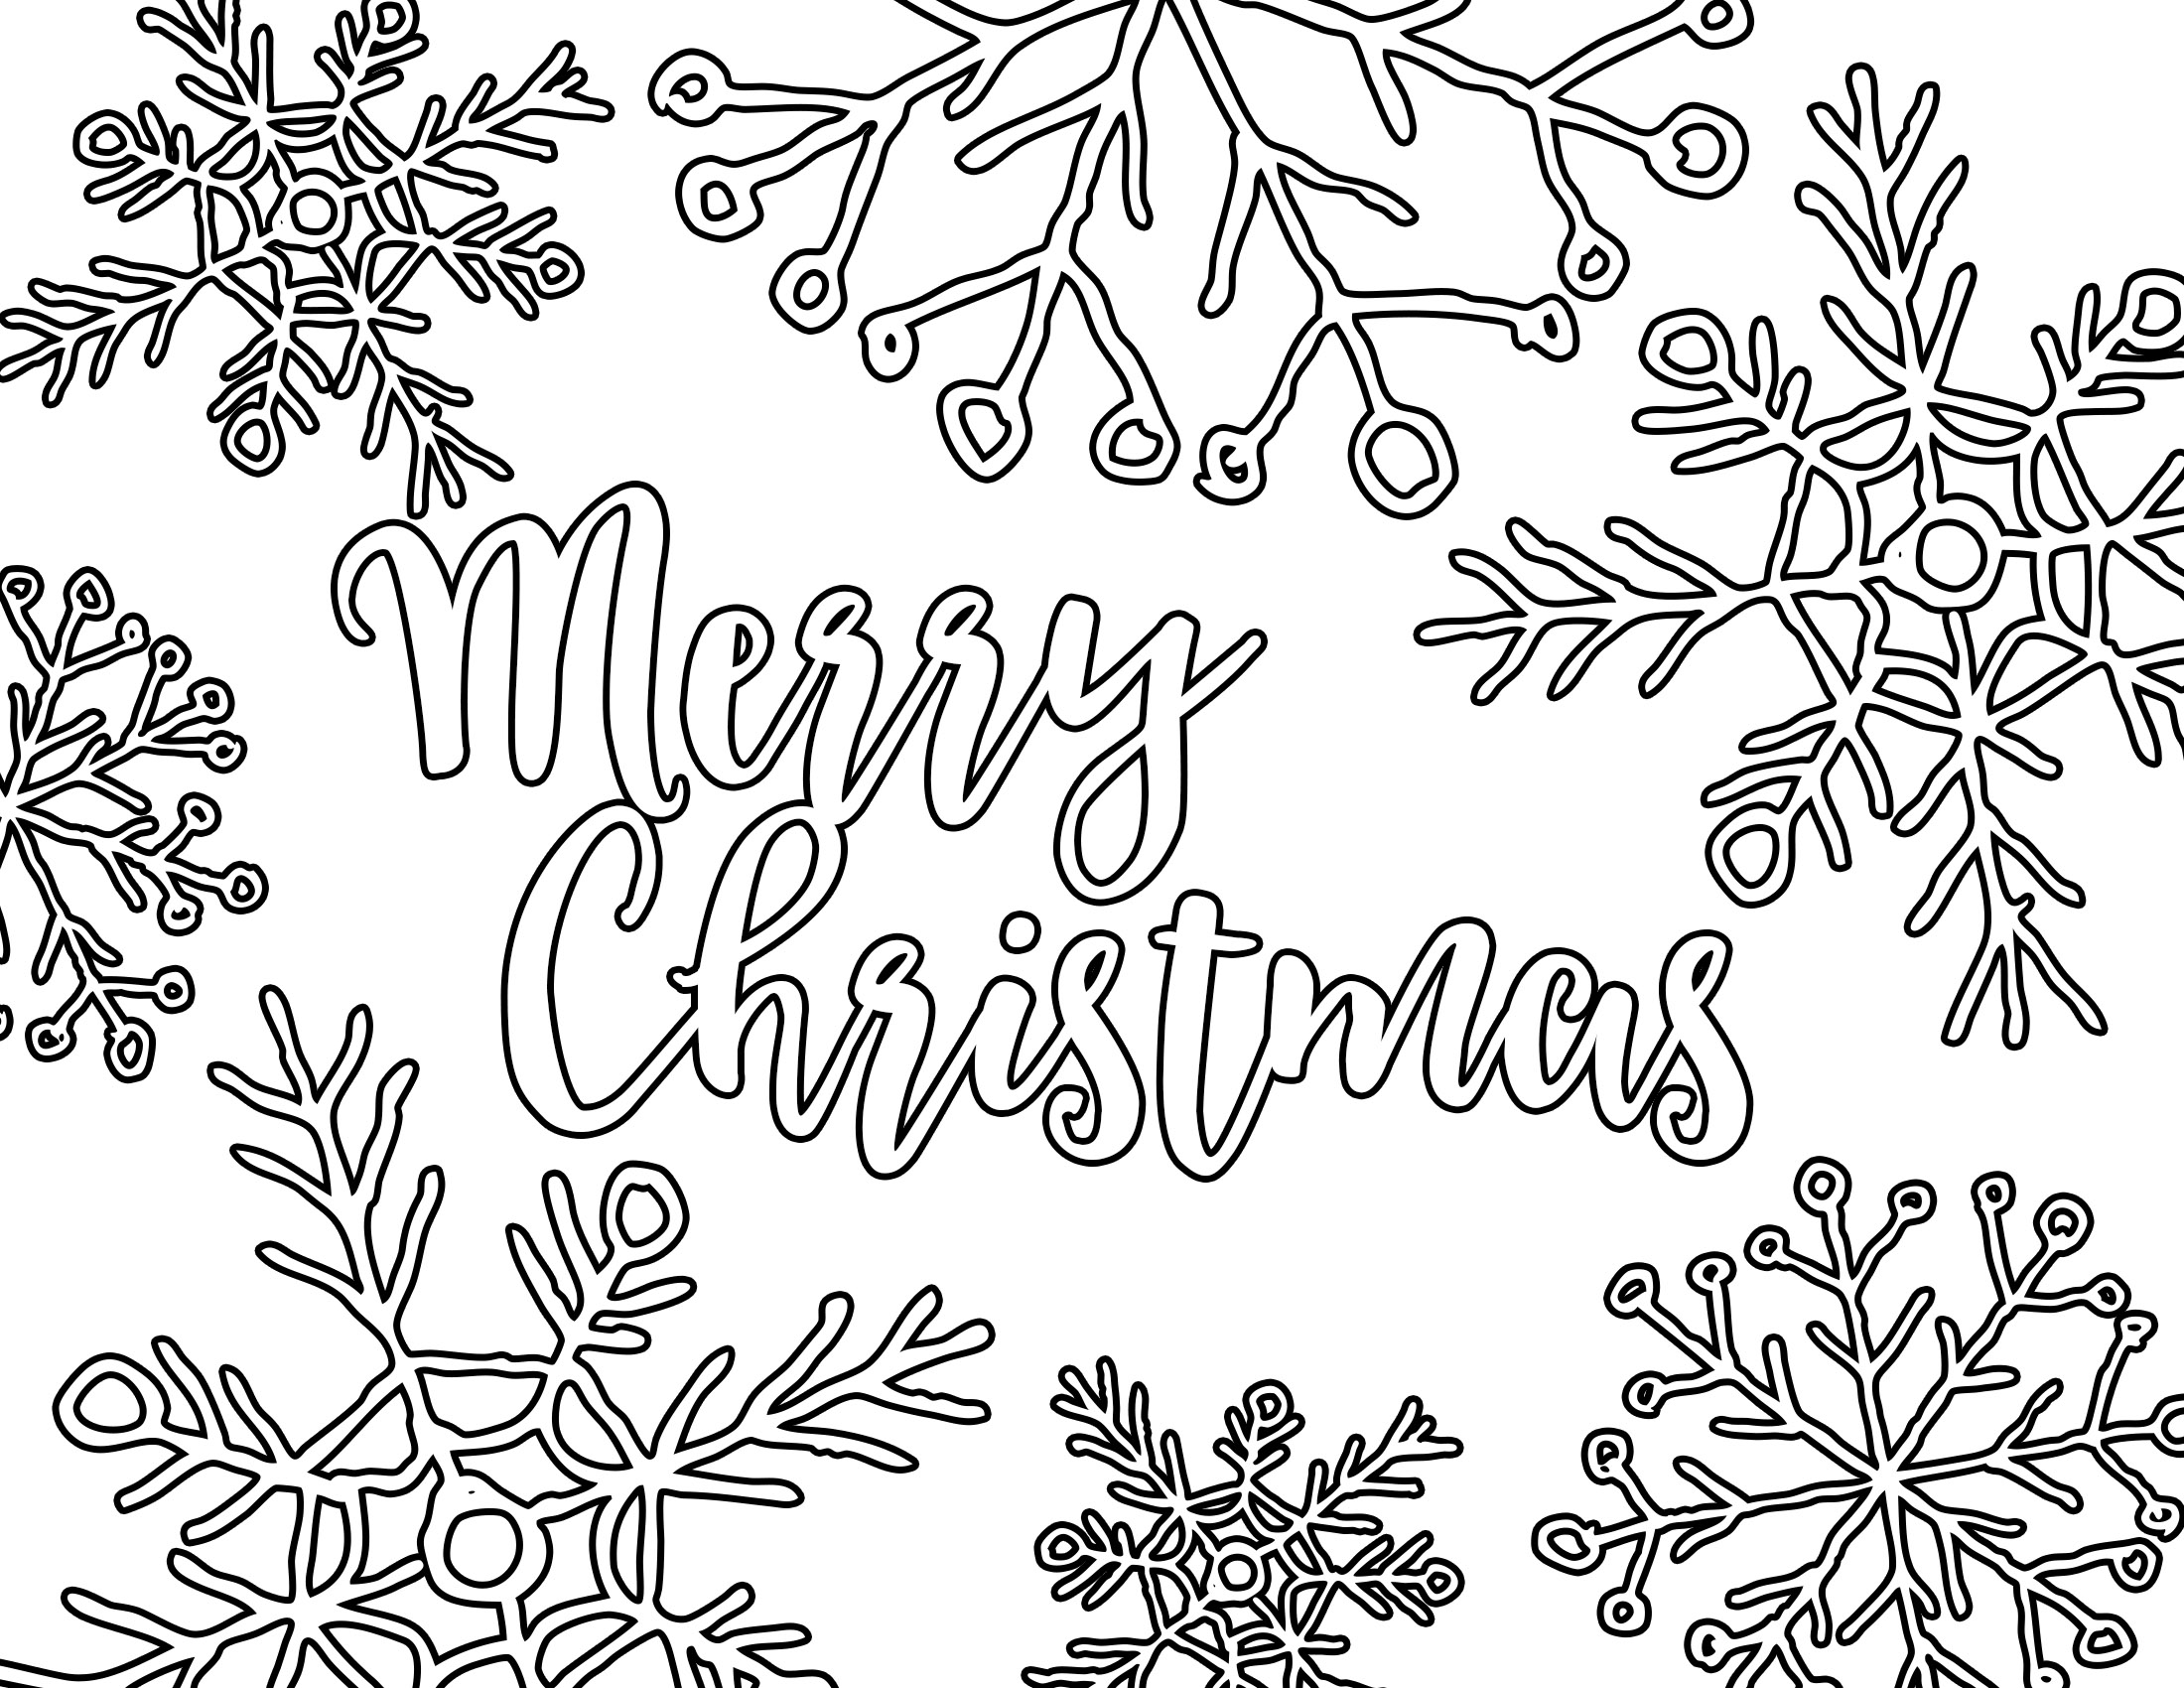 Free Printable Adult Coloring Page - Christmas Placemat - Our ...